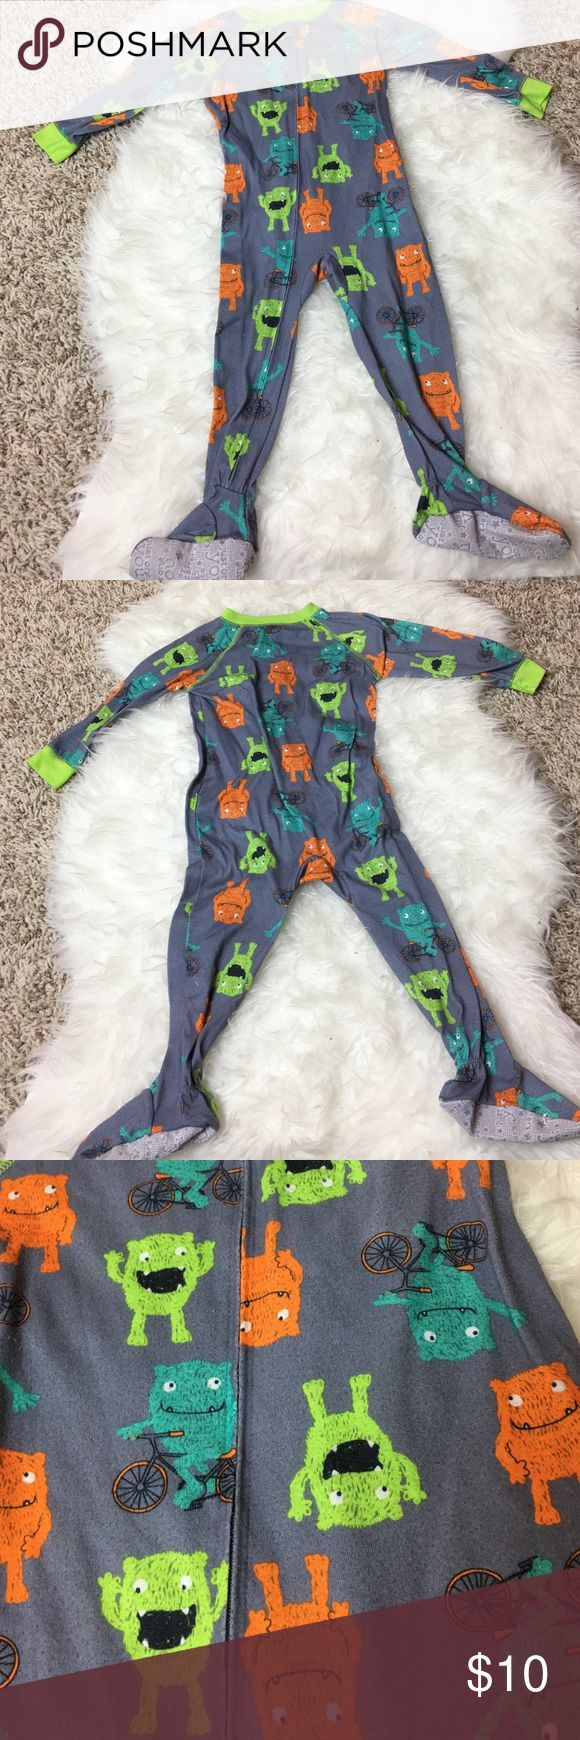 Carters Toddler Boys Lightweight Jammie's Carters Toddler Boys Footed Jammie's - Gently used. In great condition. - No rips, tears, or stains. - I offer 20% off on my children's clothing with 2 or more bundled items. - Make me an offer. I ❤ OFFERS! Carter's Pajamas